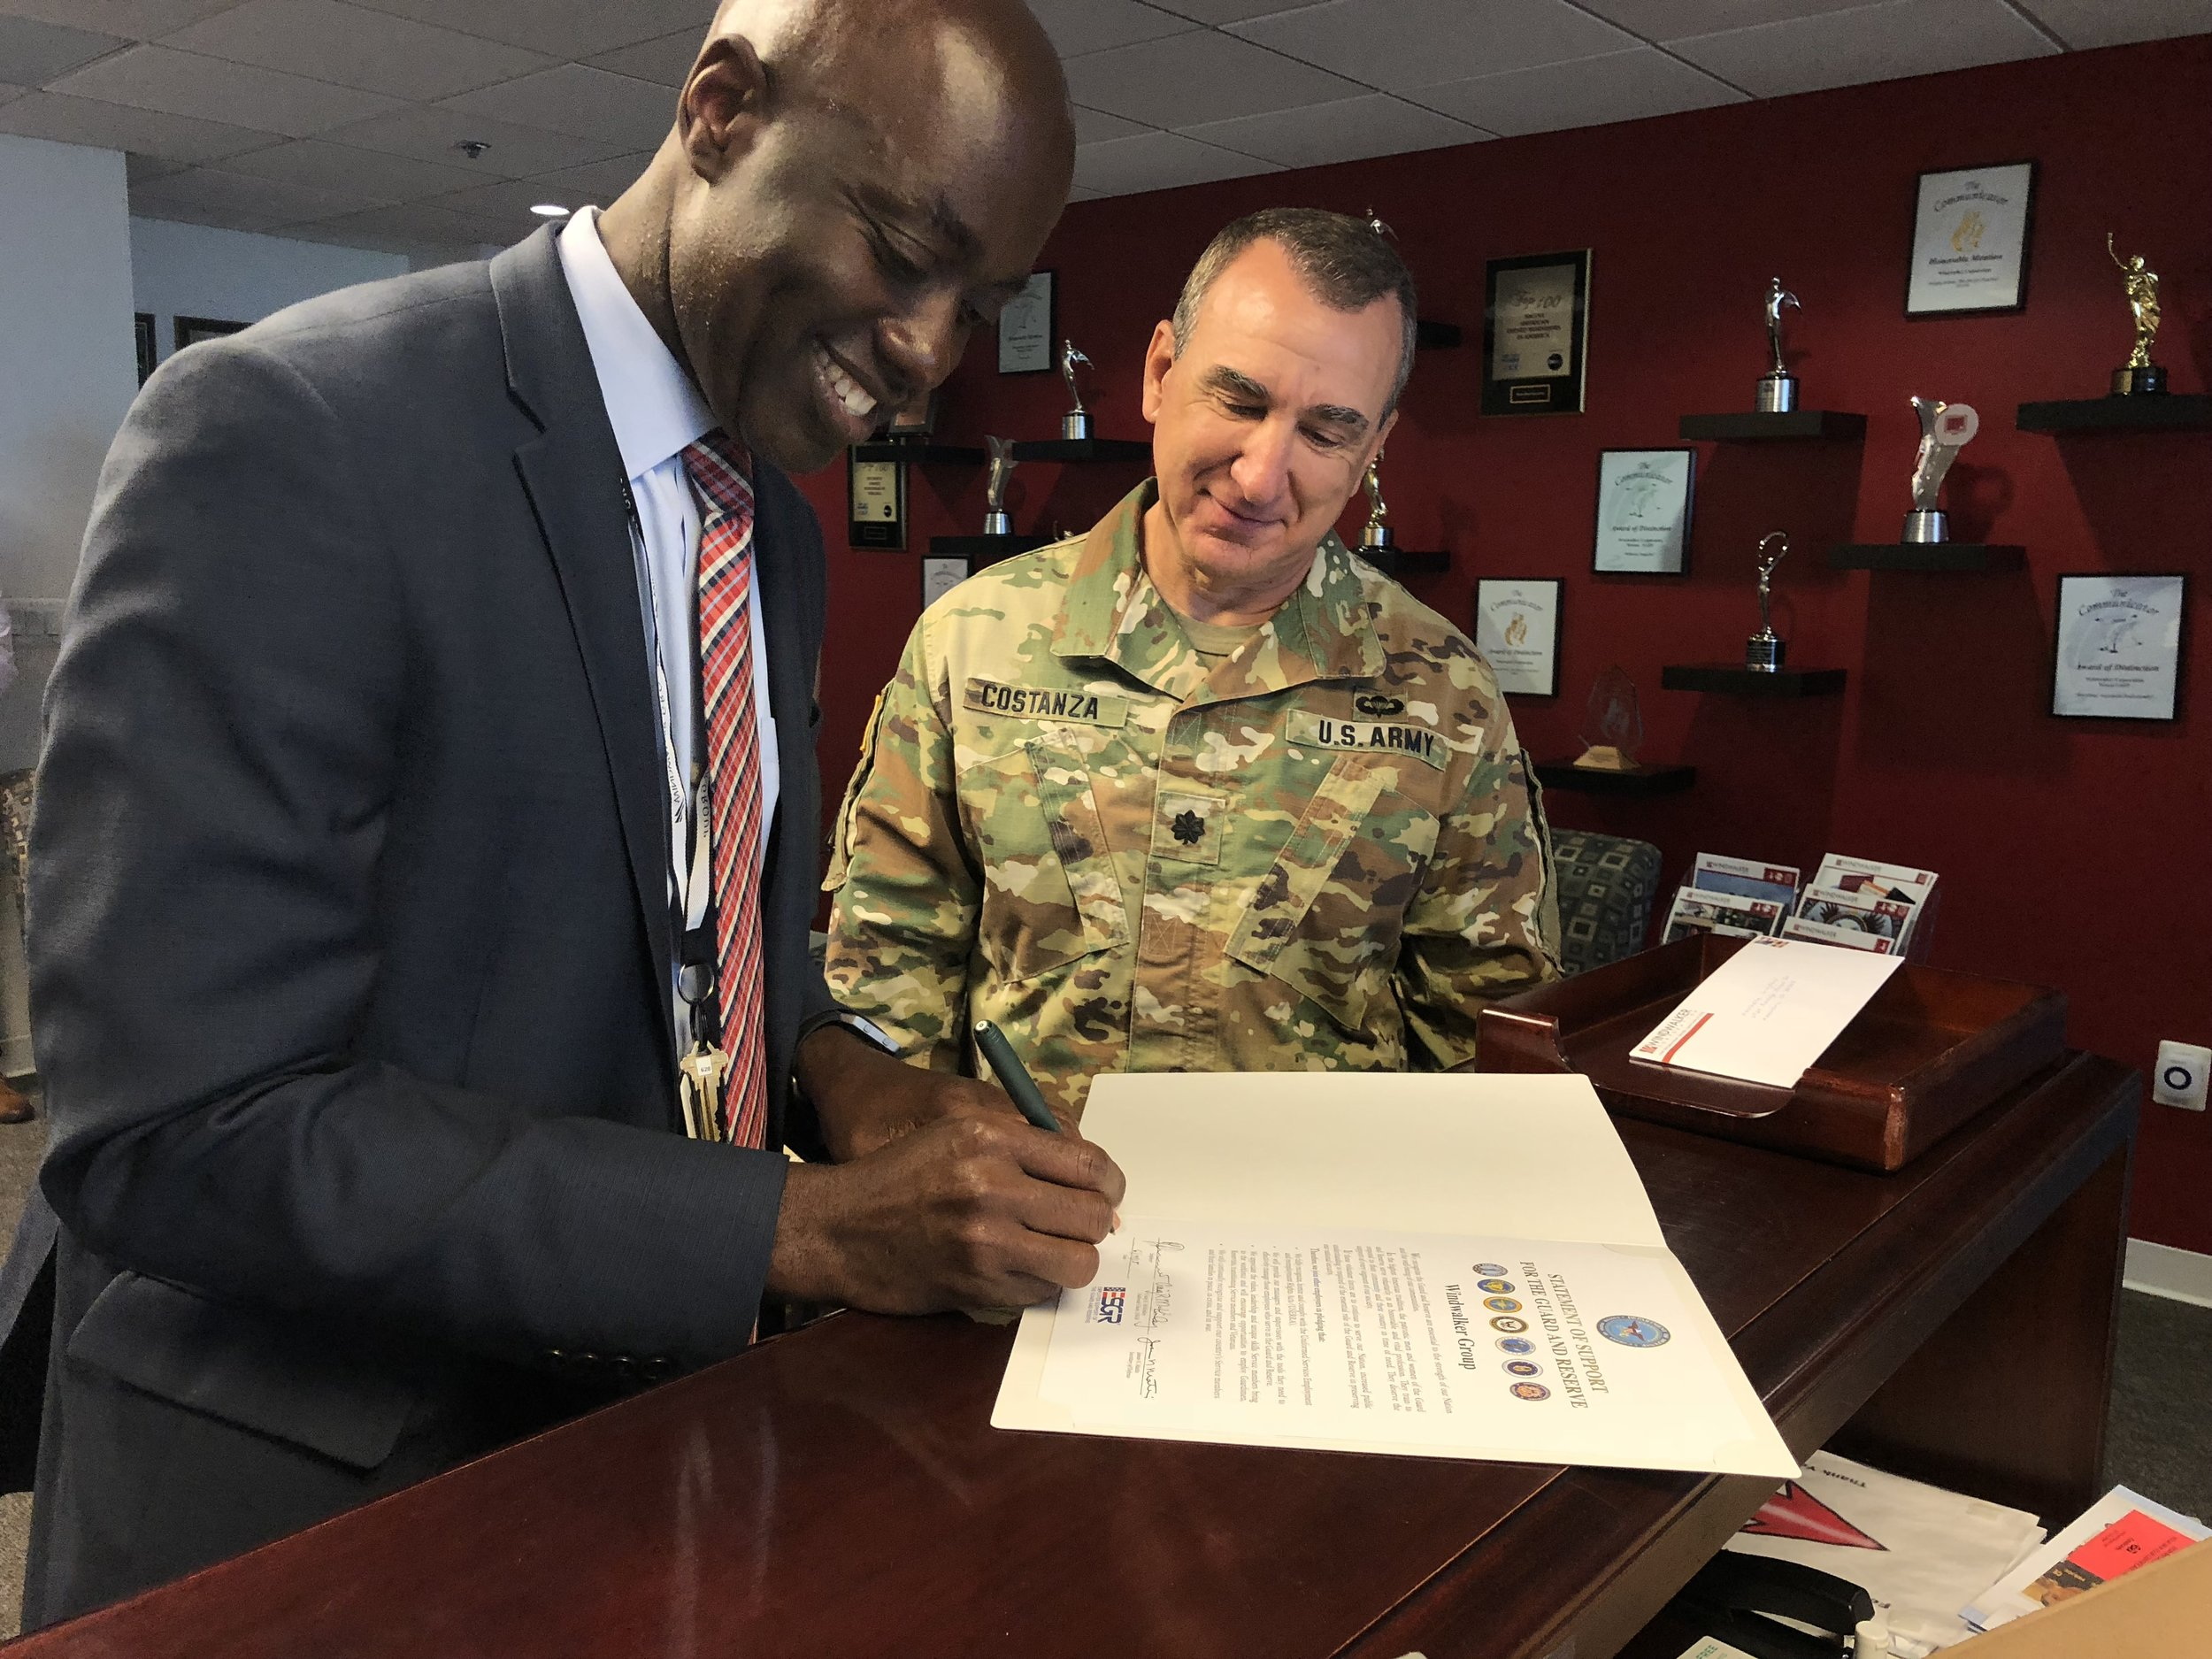 Windwalker's CEO Herby Duverné receives the Department of Defense Patriot Award, recognizing Windwalker Group's policies and practices that facilitate employee participation in the Guard and Reserve. This award honors Mr. Duverné for his superior support of Guard and Reserve employees.